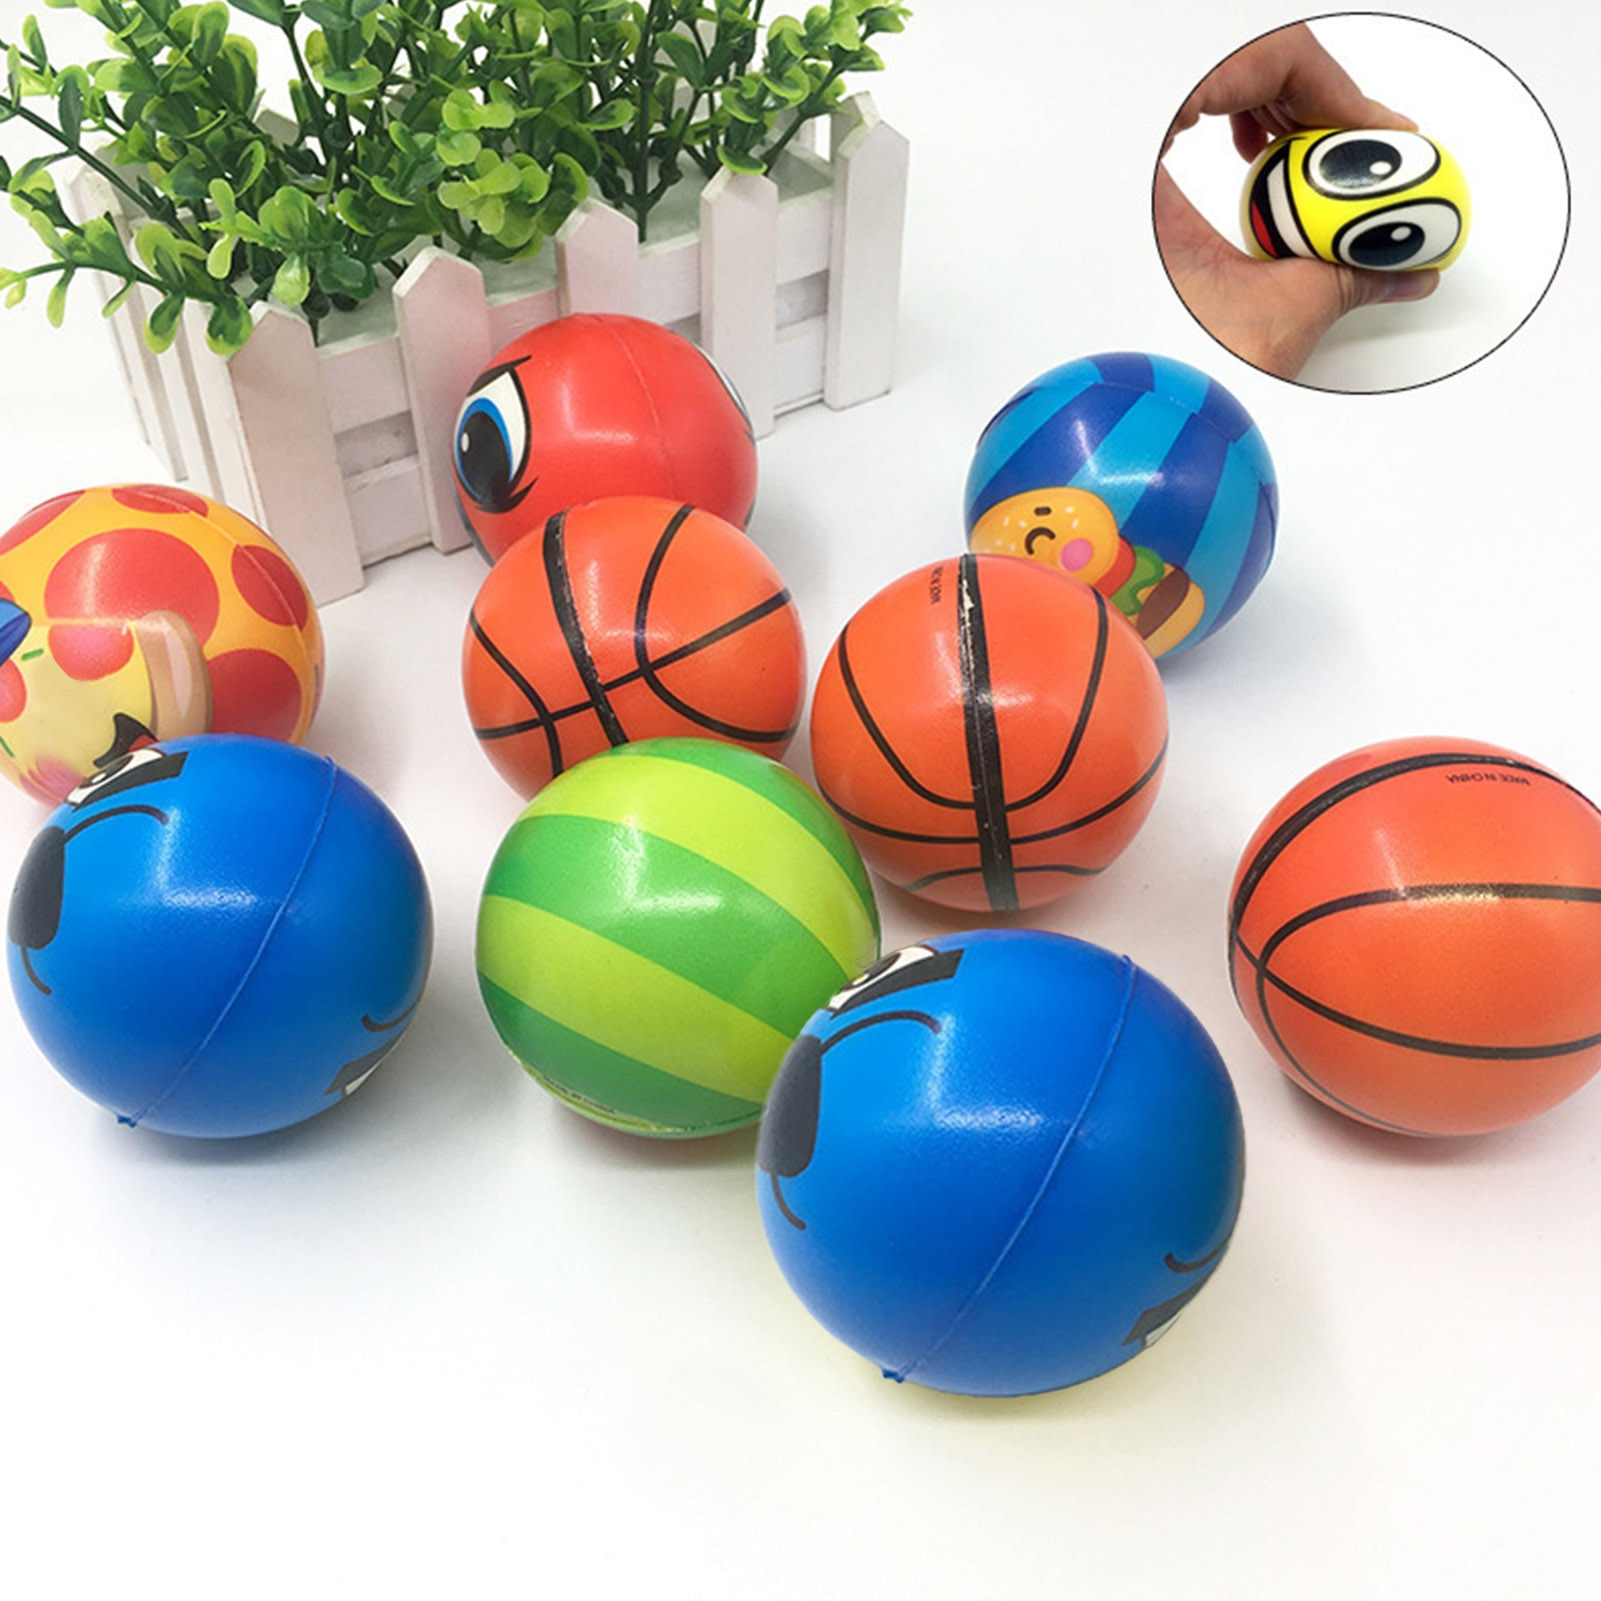 40PCS Decompression Fidget Sensory Toy Set Stress Relieve Balls ADHD Autism Anxiety Relief Sensory Toy For Kids Adults DH enlarge